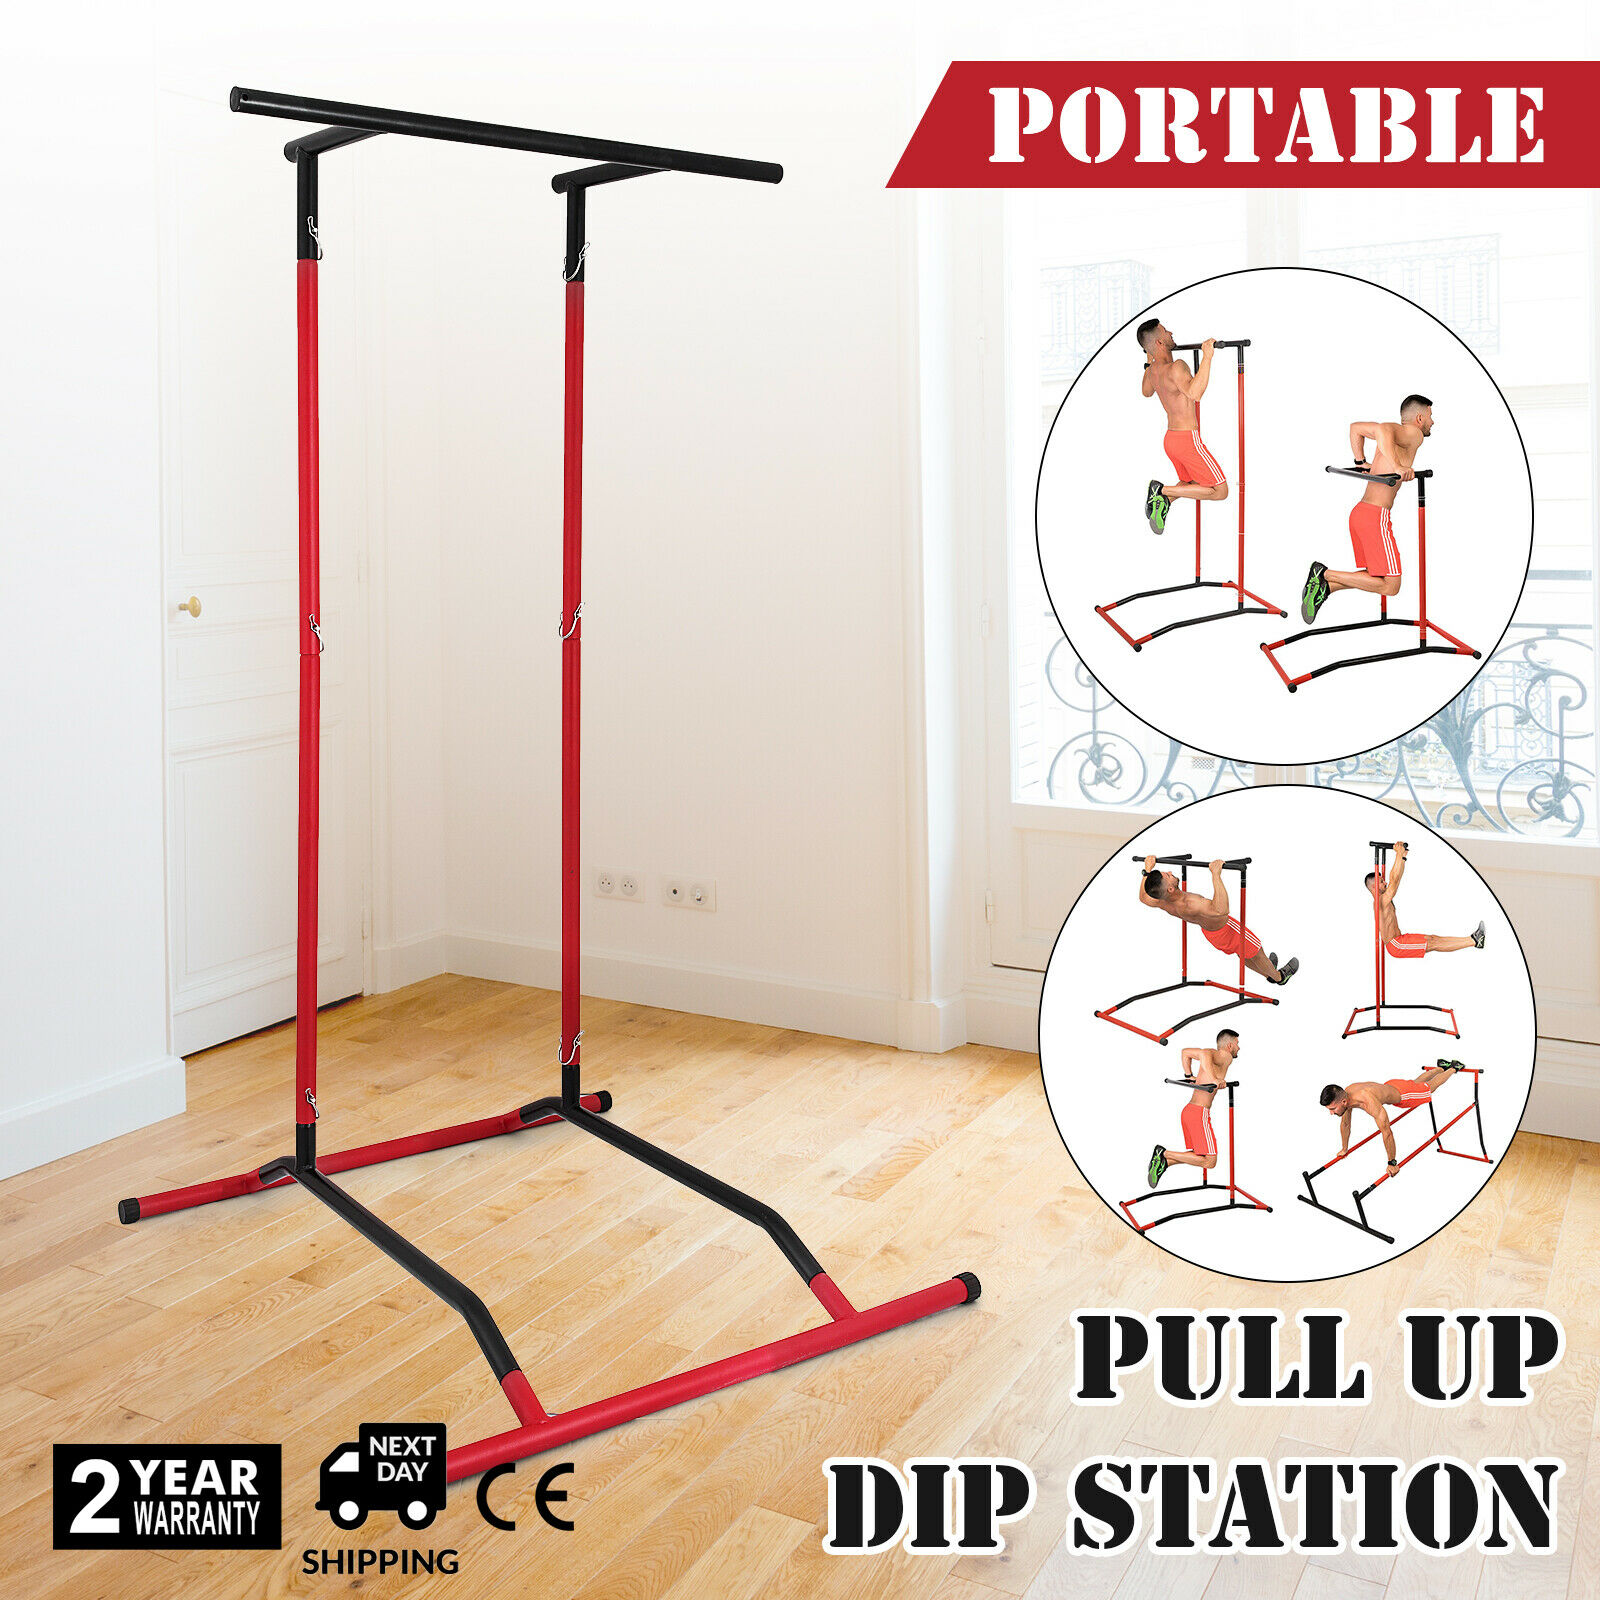 Black Portable Pull Up Dip Station Gym Bar Power Tower Workout Stand Kit PRO